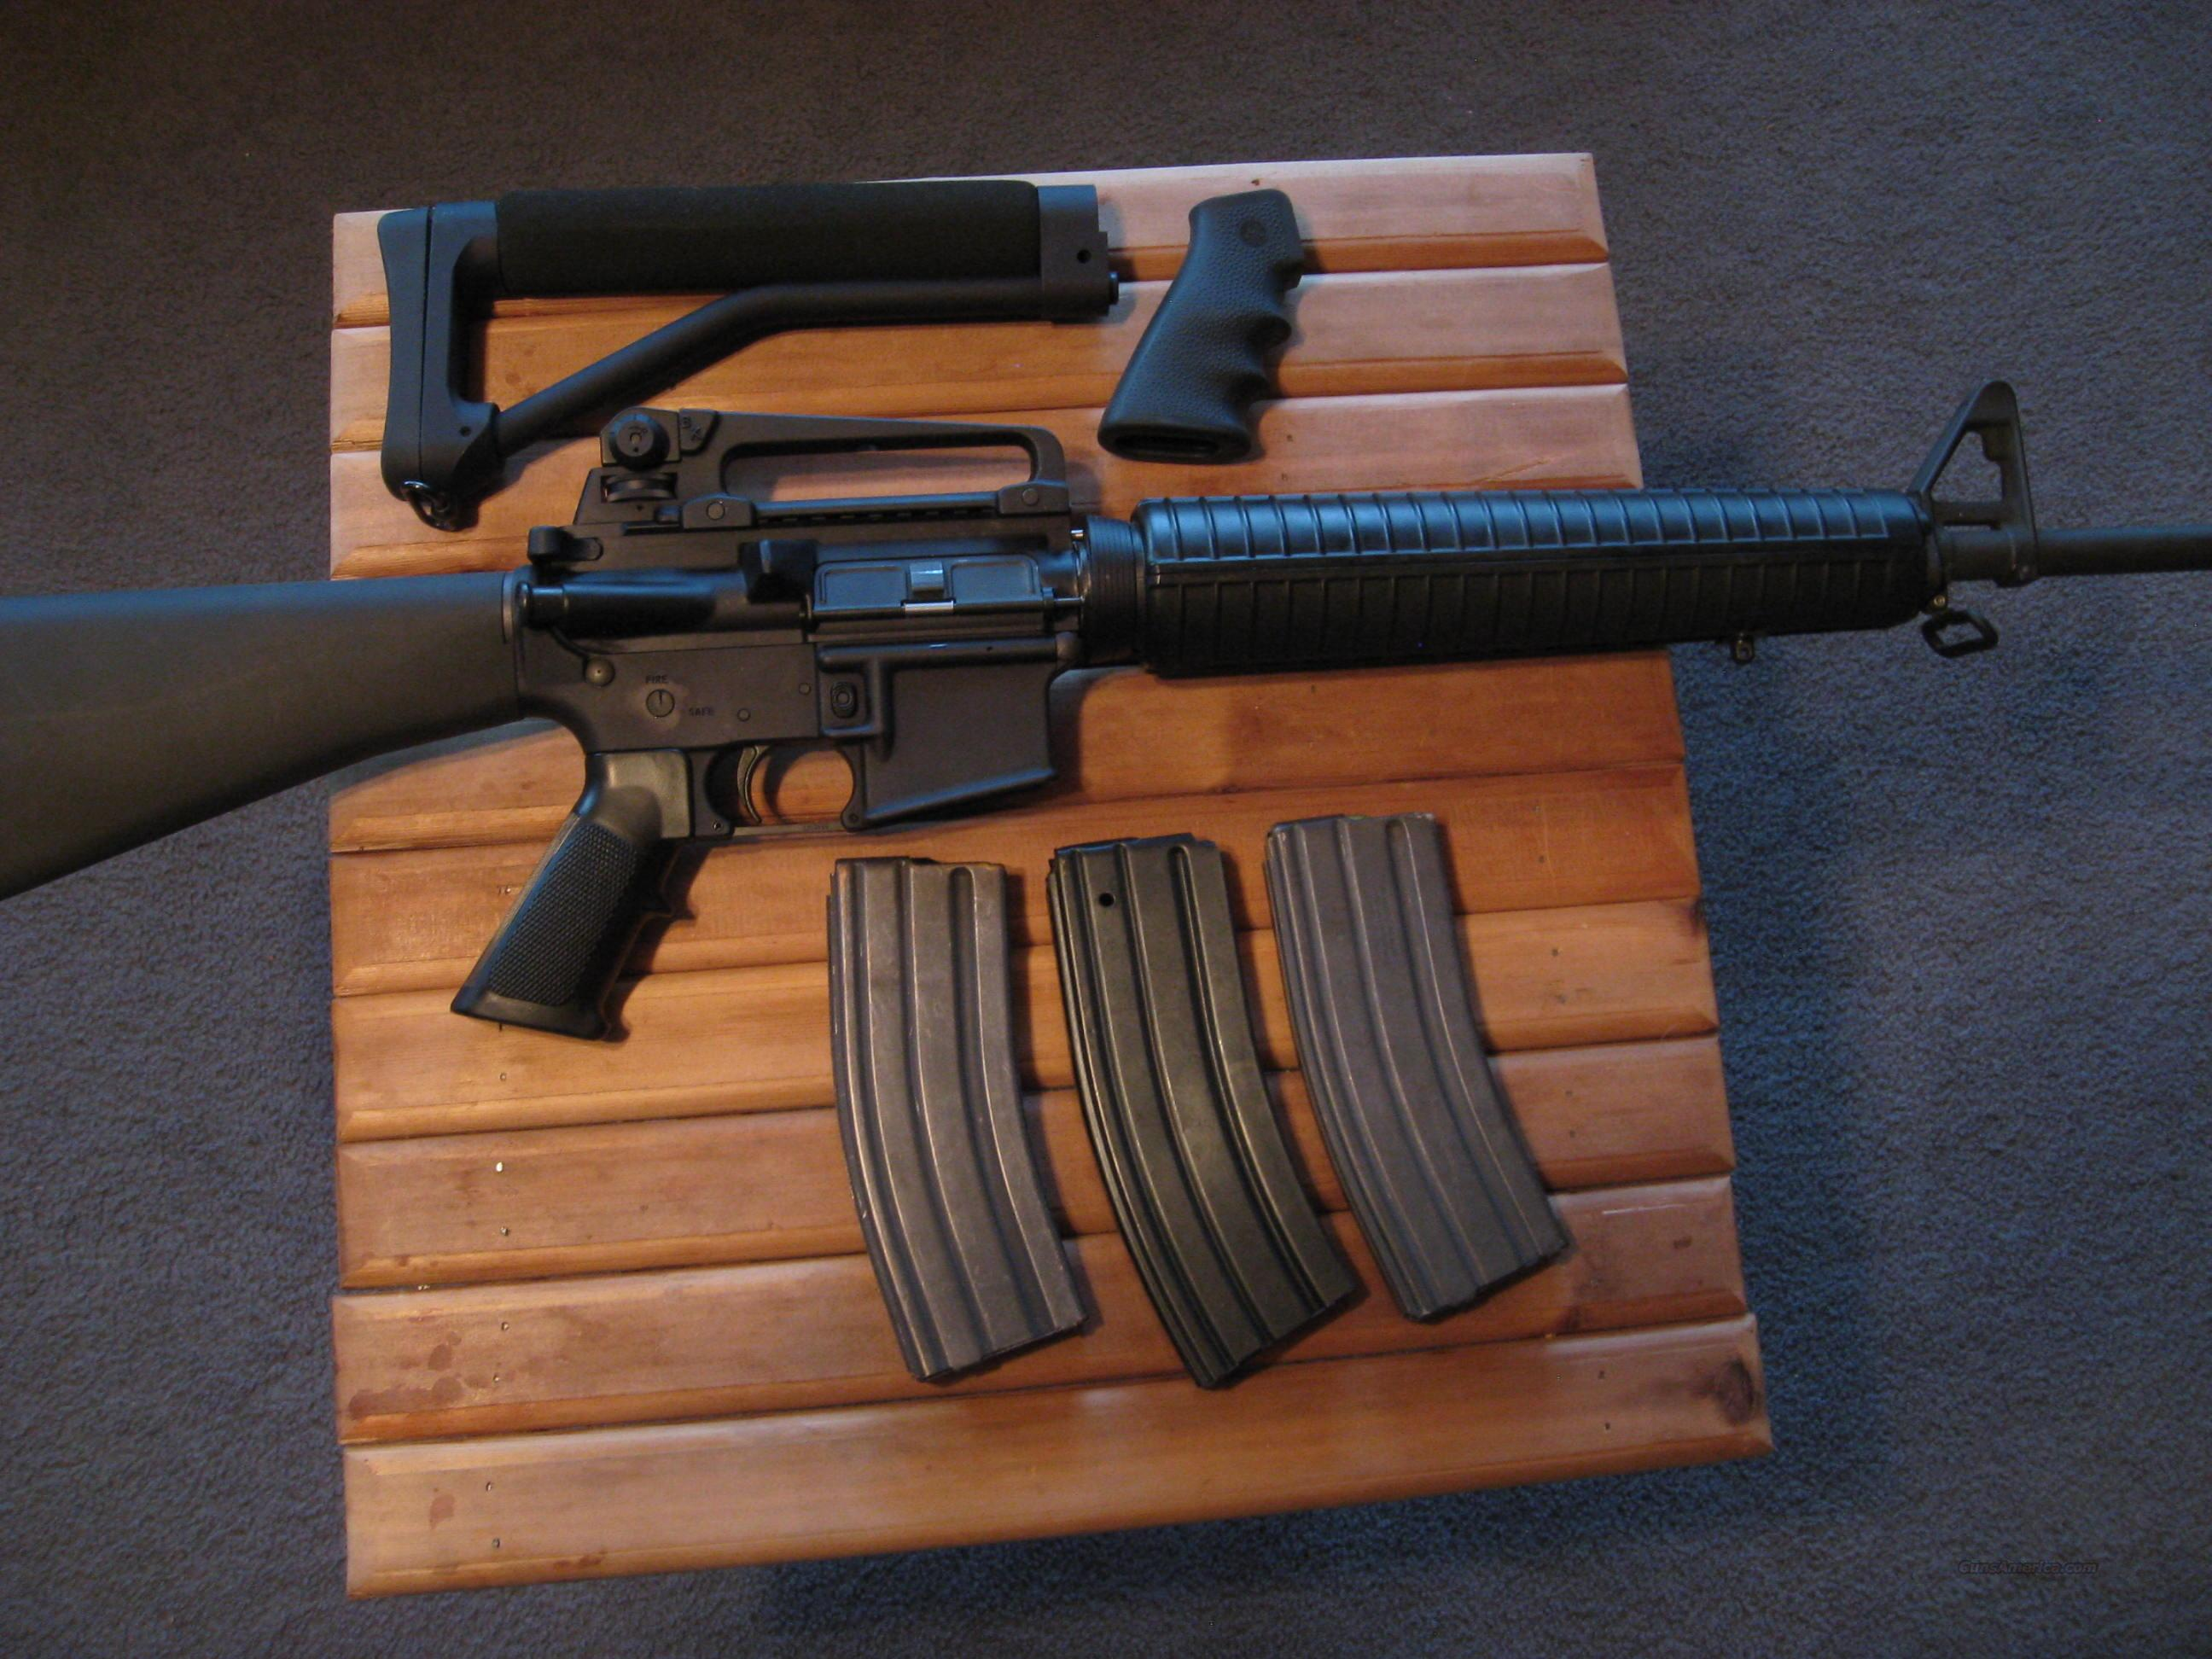 BUSHMASTER XM-15 E2S RIFLE  Guns > Rifles > Bushmaster Rifles > Complete Rifles